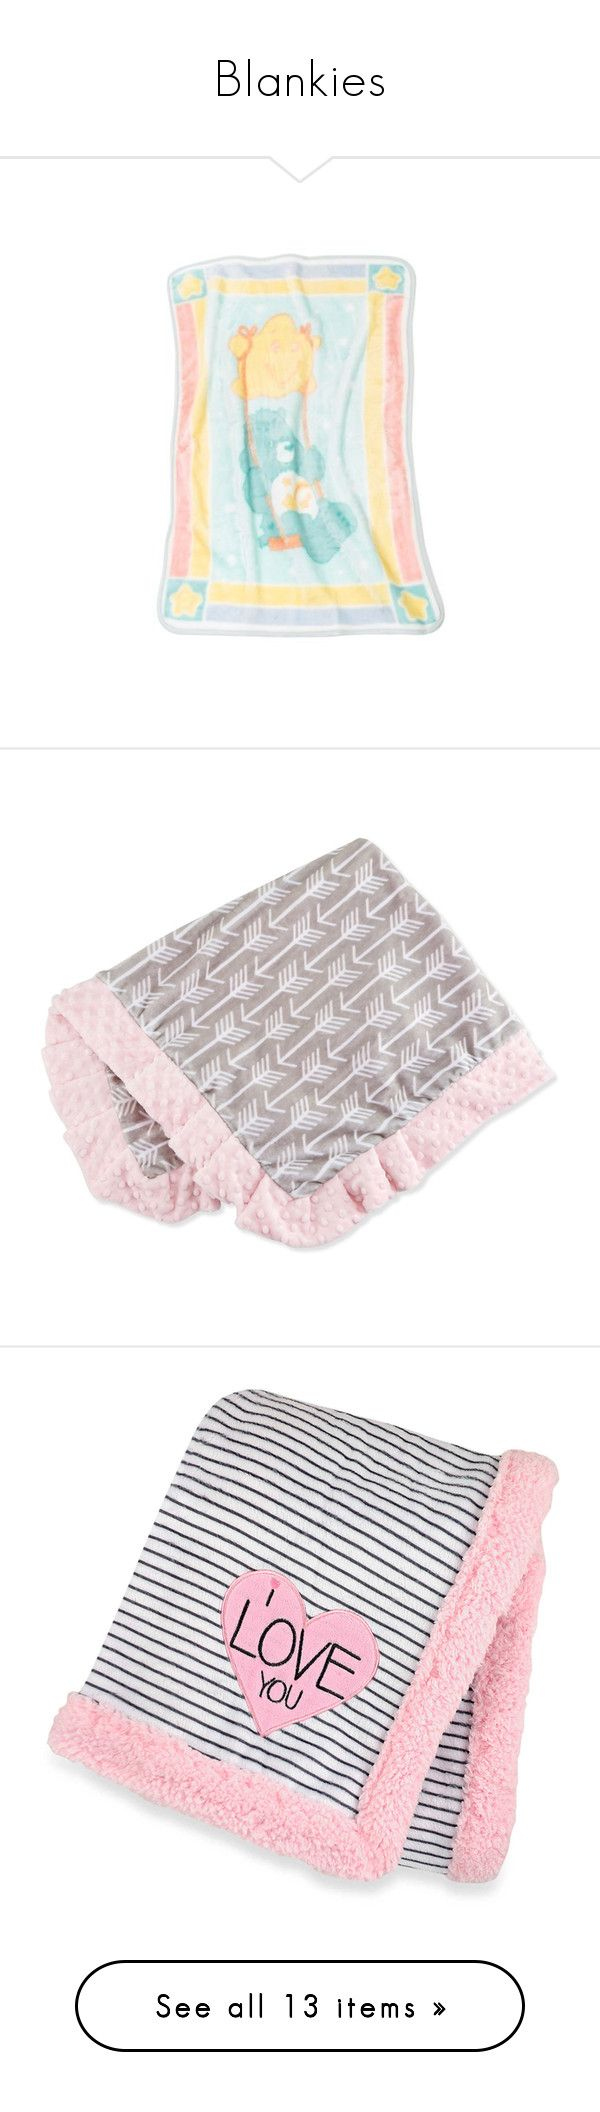 """""""Blankies"""" by daddies-baby-bear ❤ liked on Polyvore featuring home, children's room, children's bedding, baby bedding, kids baby blankets, pink, baby, blanket, bed & bath and bedding"""